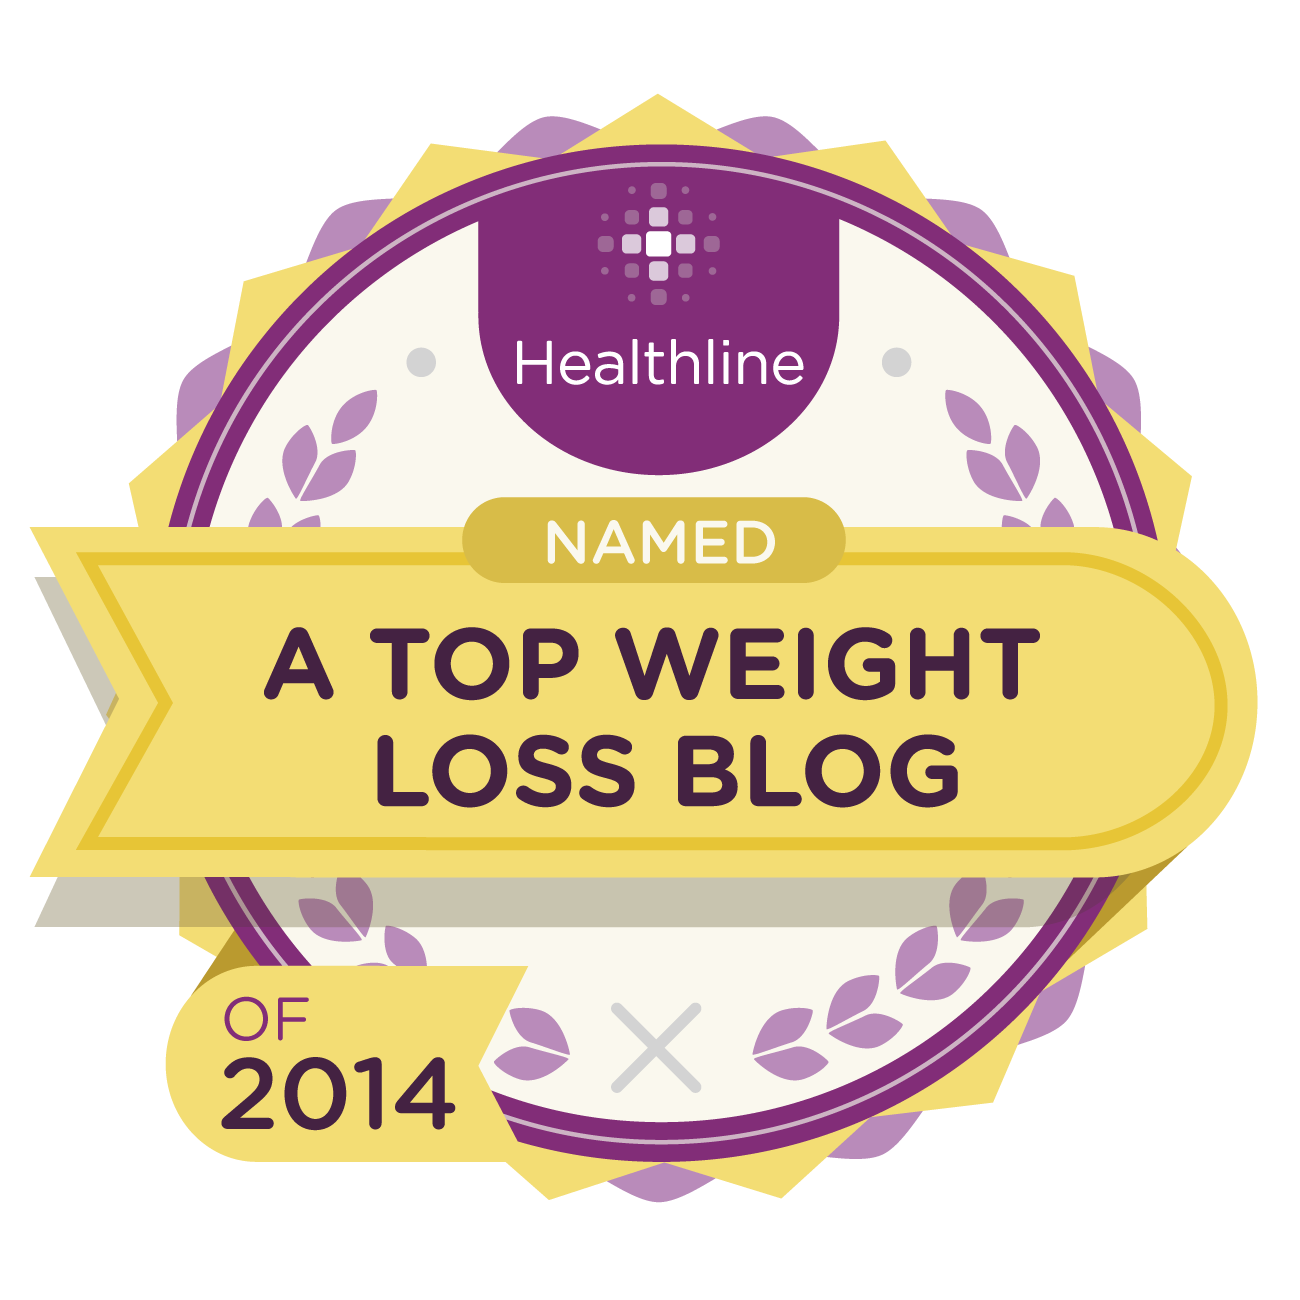 The 20 Best Weight Loss Blogs of 2014